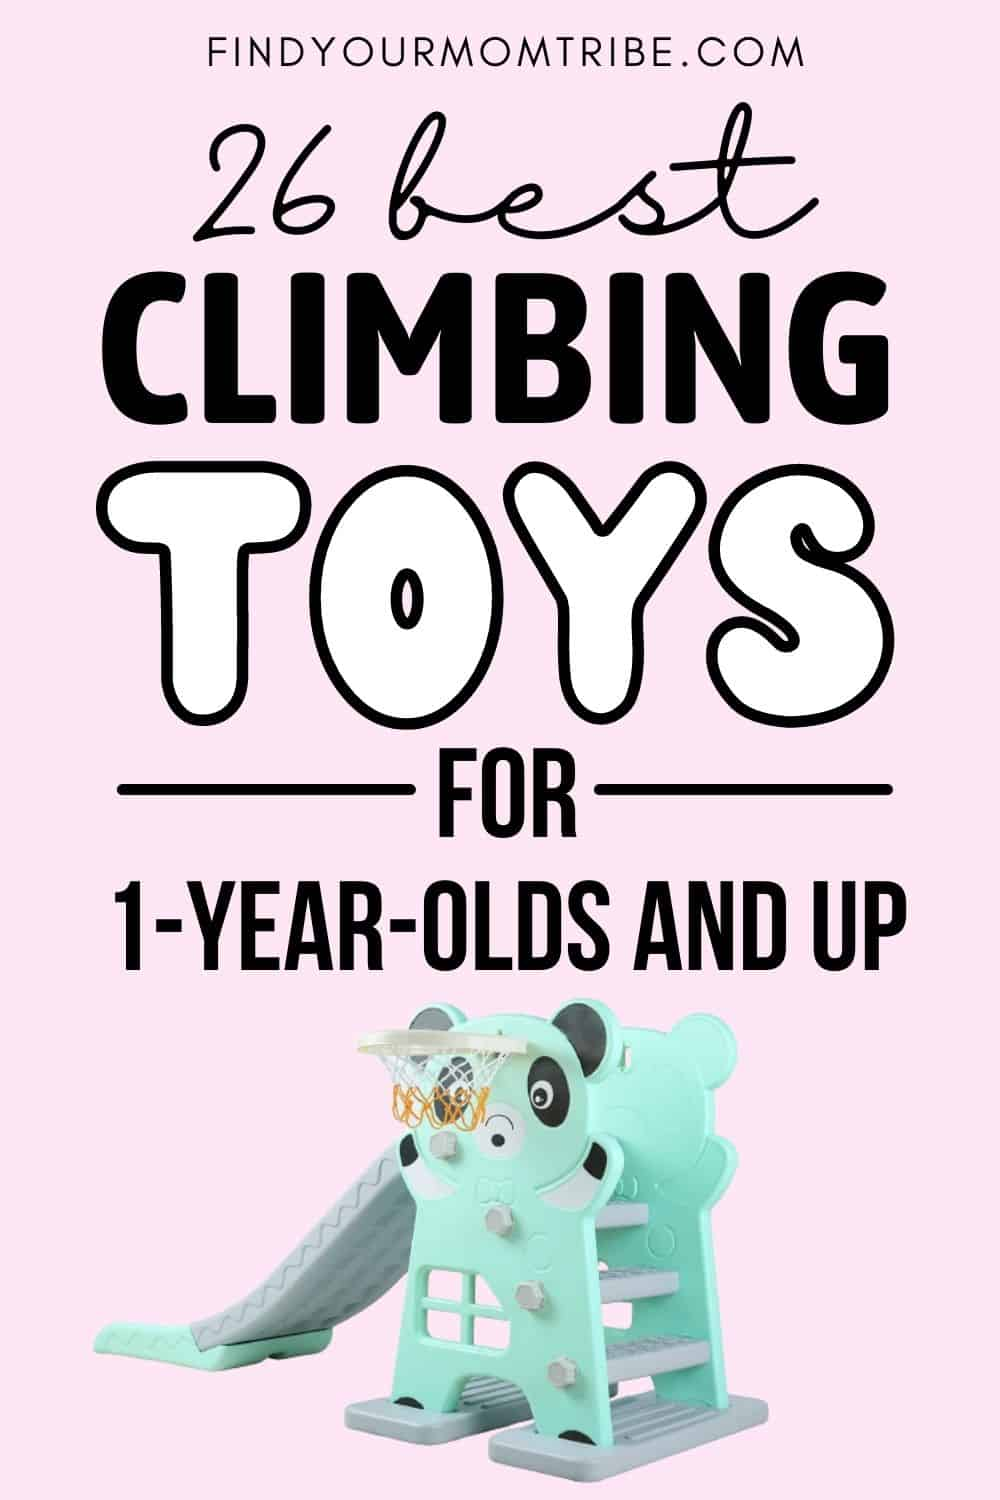 26 Best 1-Year-Old Climbing Toys Pinterest